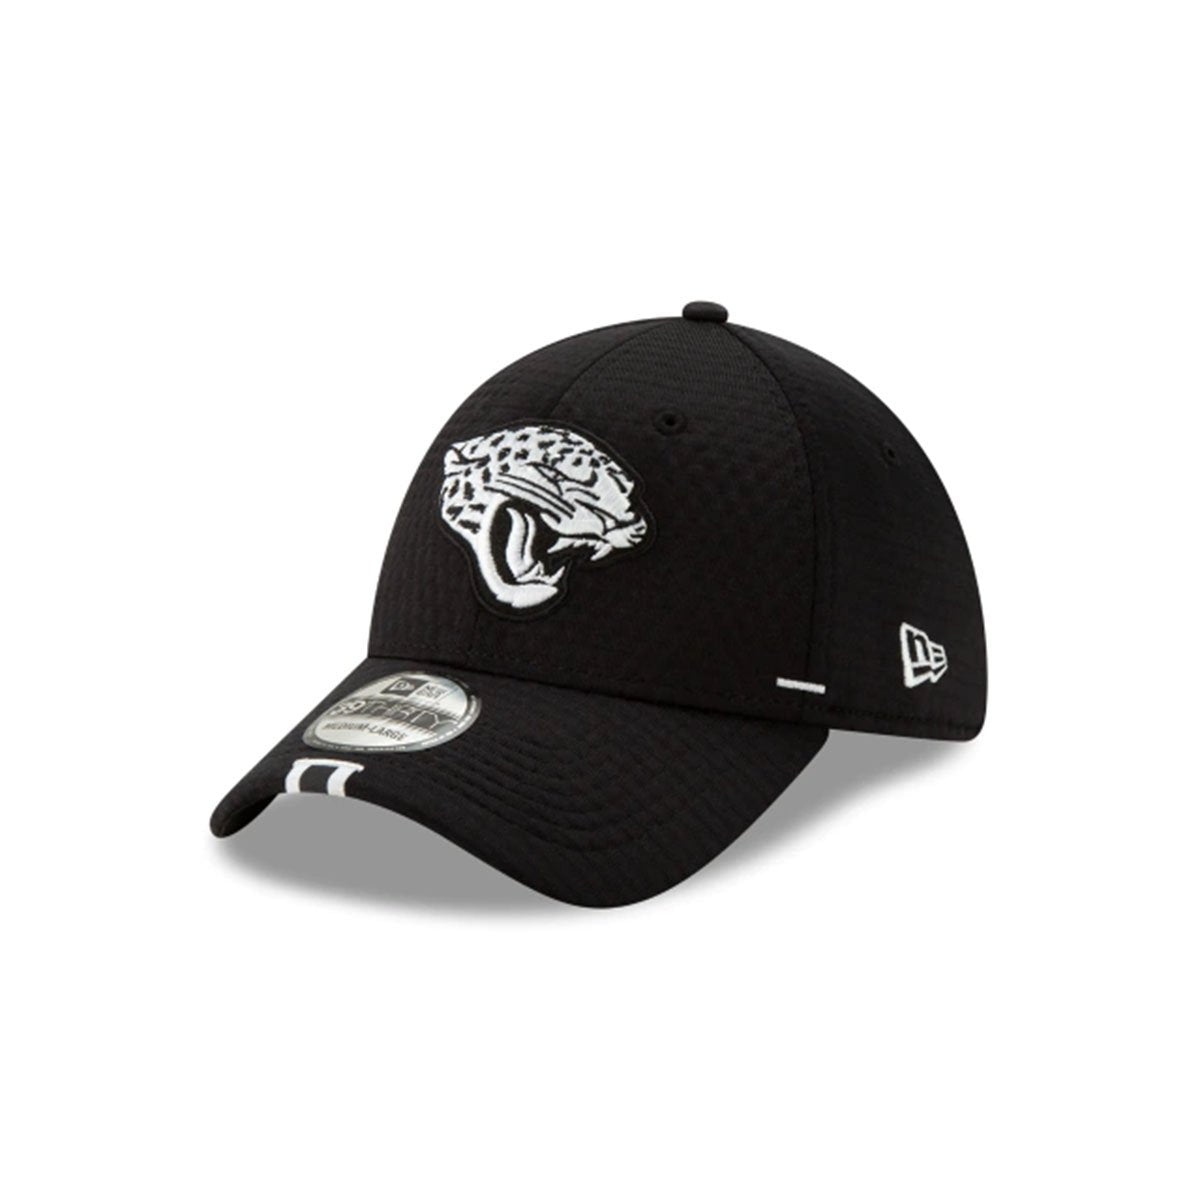 JACKSONVILLE JAGUARS 39THIRTY STRETCH FIT BLACK/WHITE